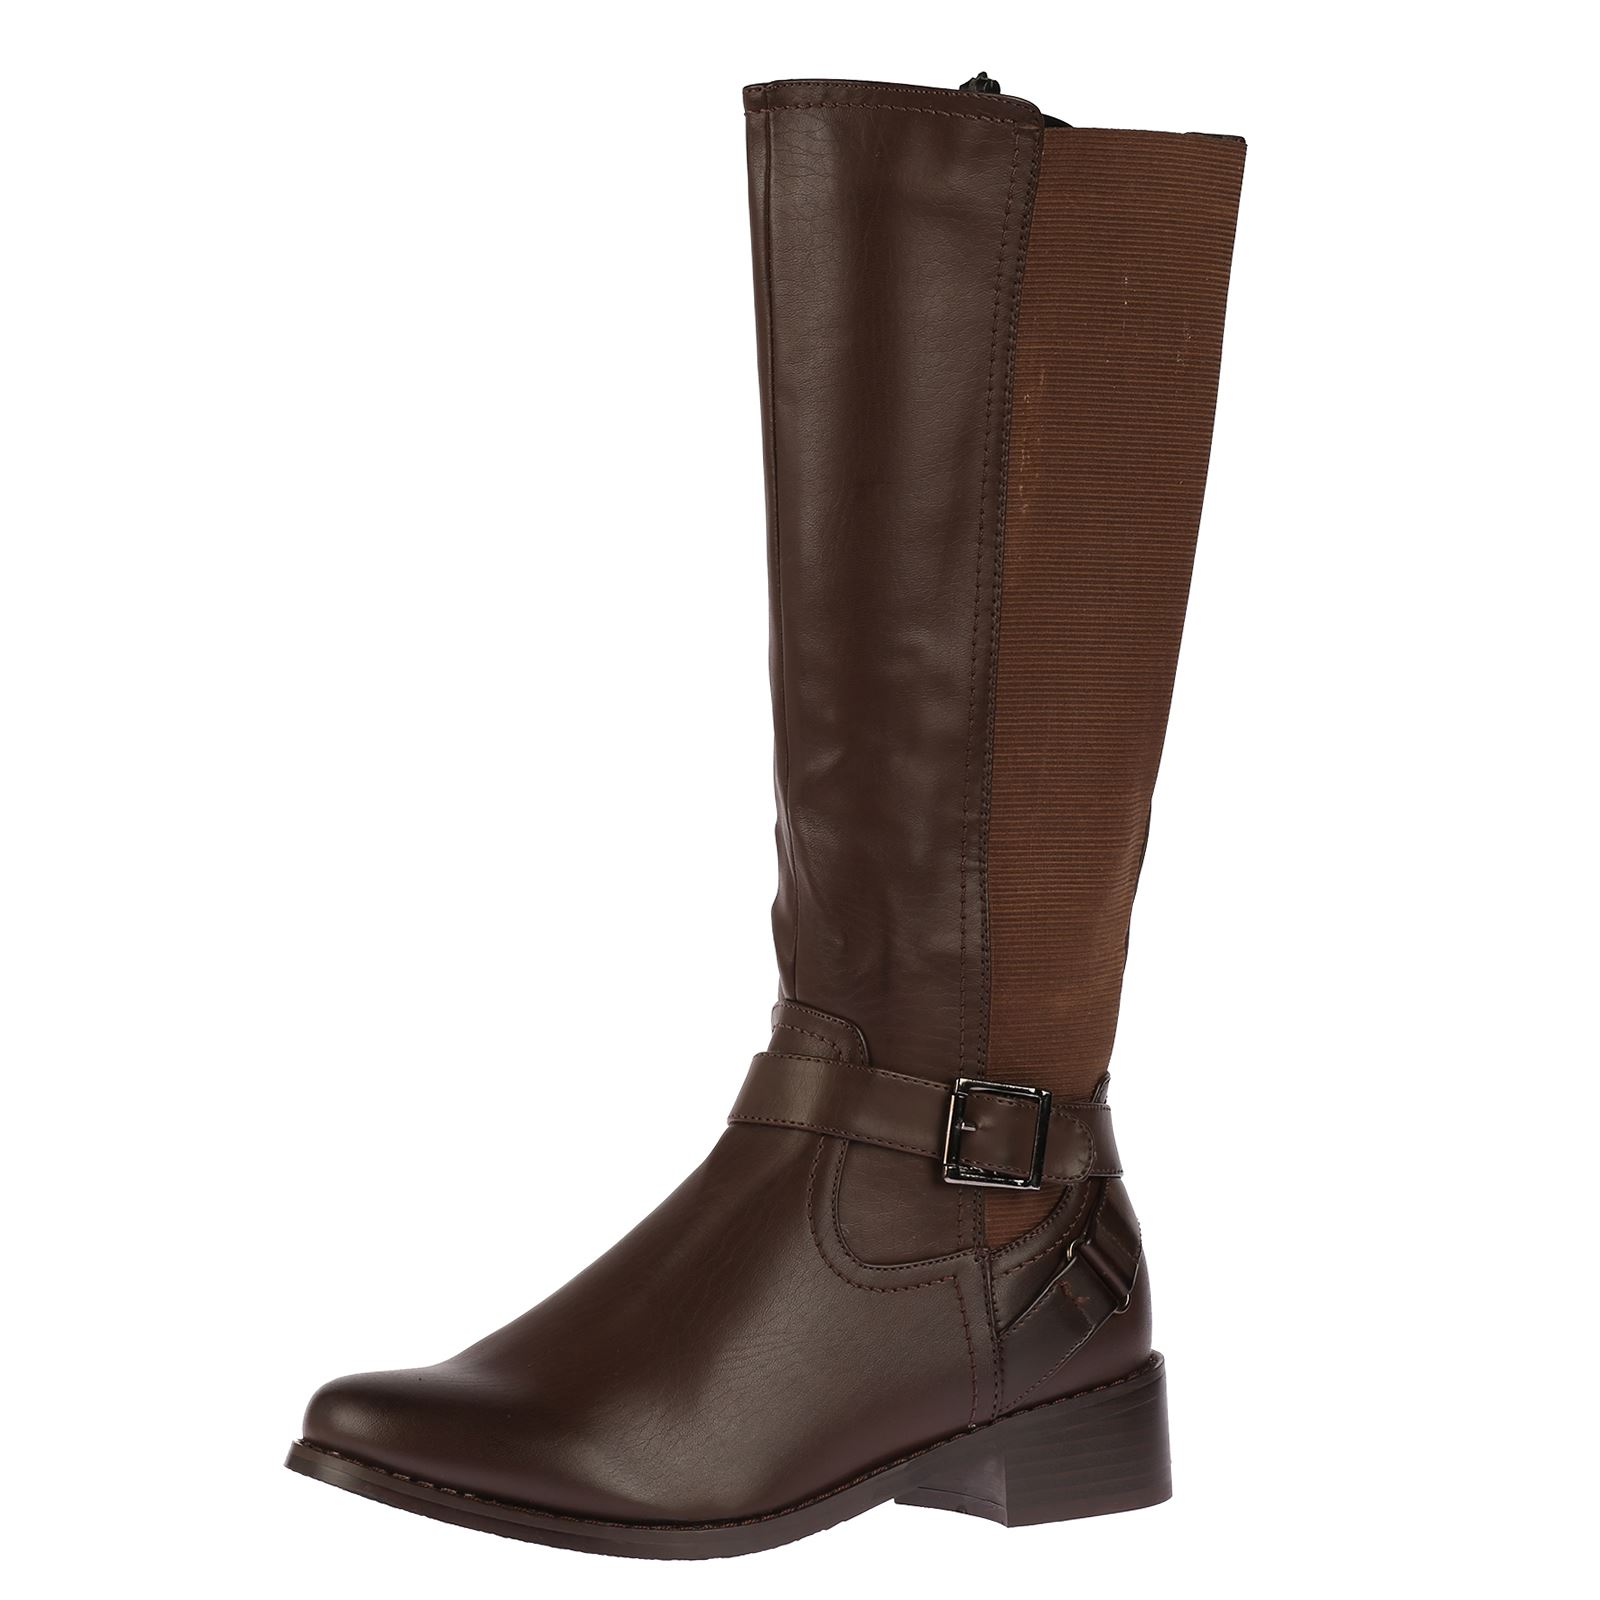 R9E-LADIES-WOMENS-EXTRA-WIDE-CALF-STRETCH-MID-CALF-UNDER-KNEE-CASUAL-BOOTS-SIZE